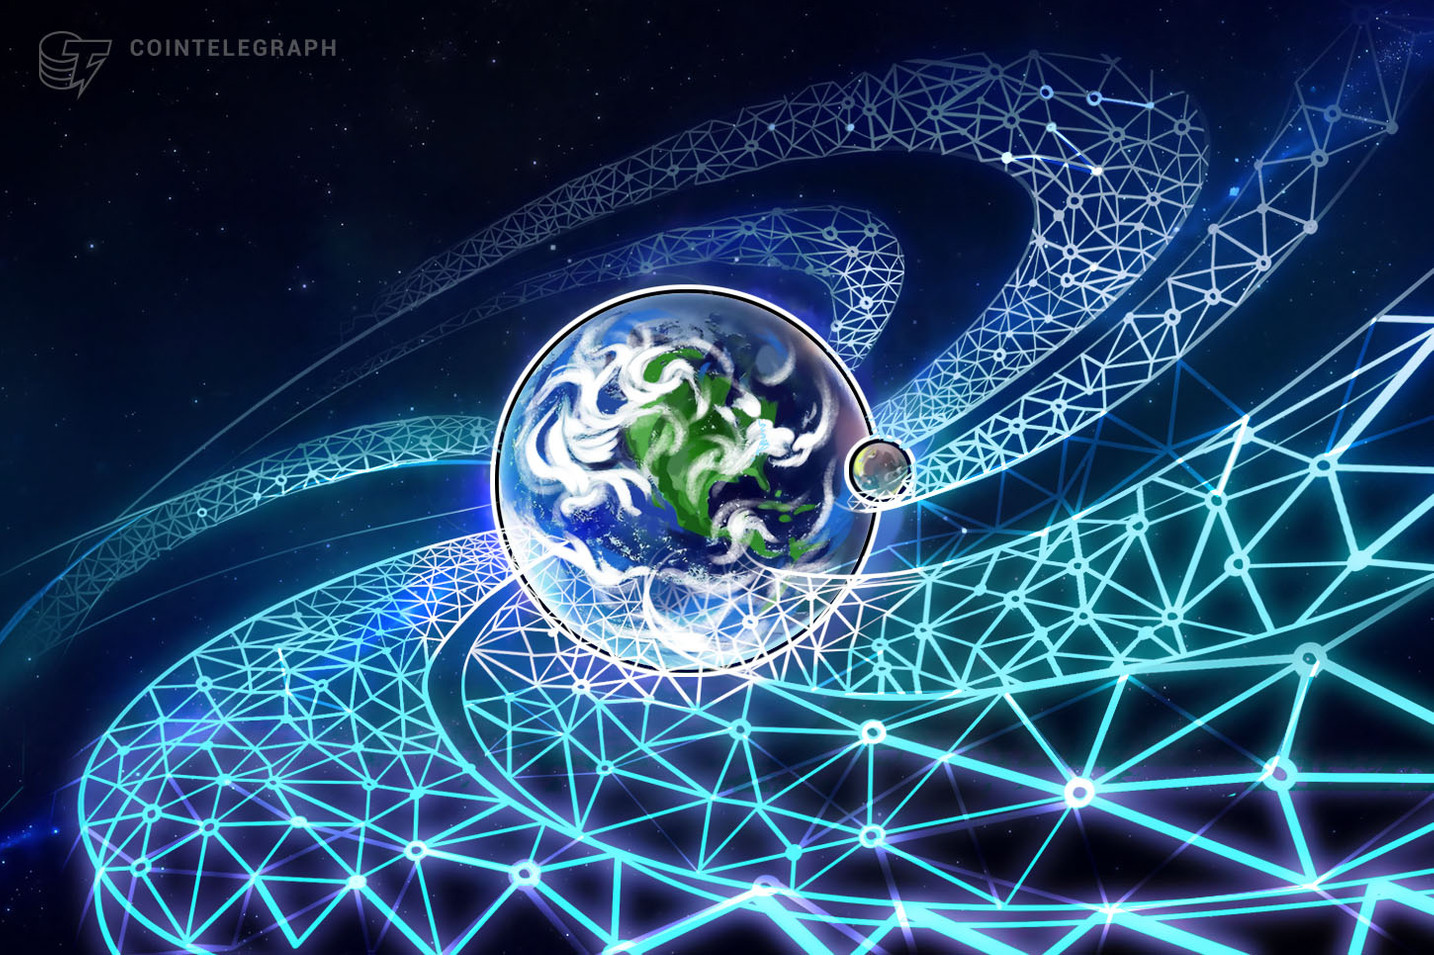 Gigante de internet de Corea del Sur Kakao invierte en start-up blockchain Orbs